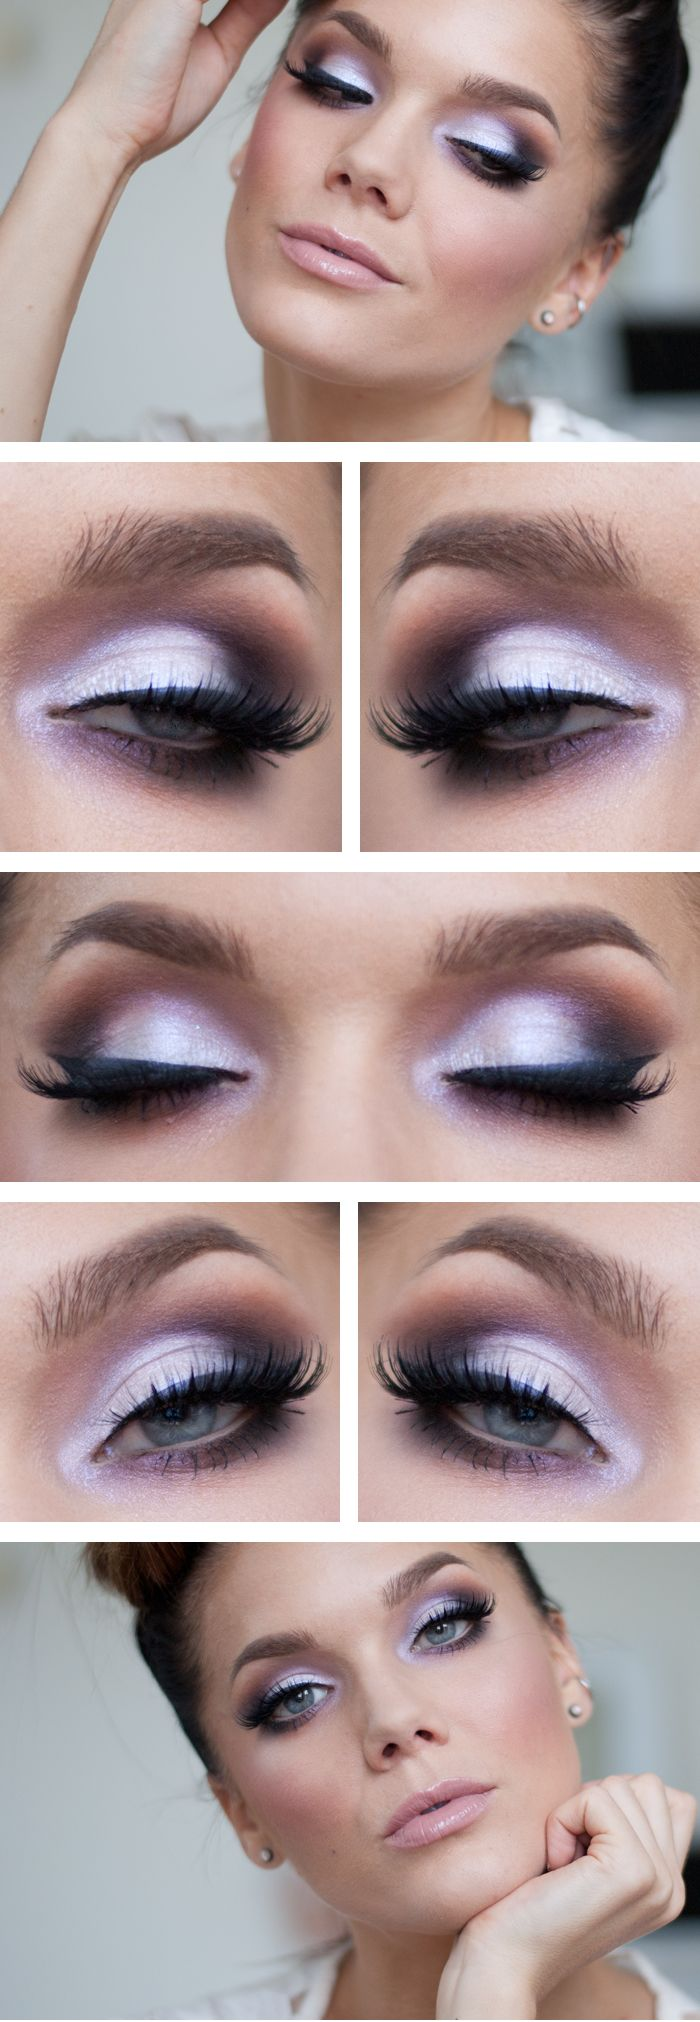 #makeup #beautiful #DIY #tips #cosmetics